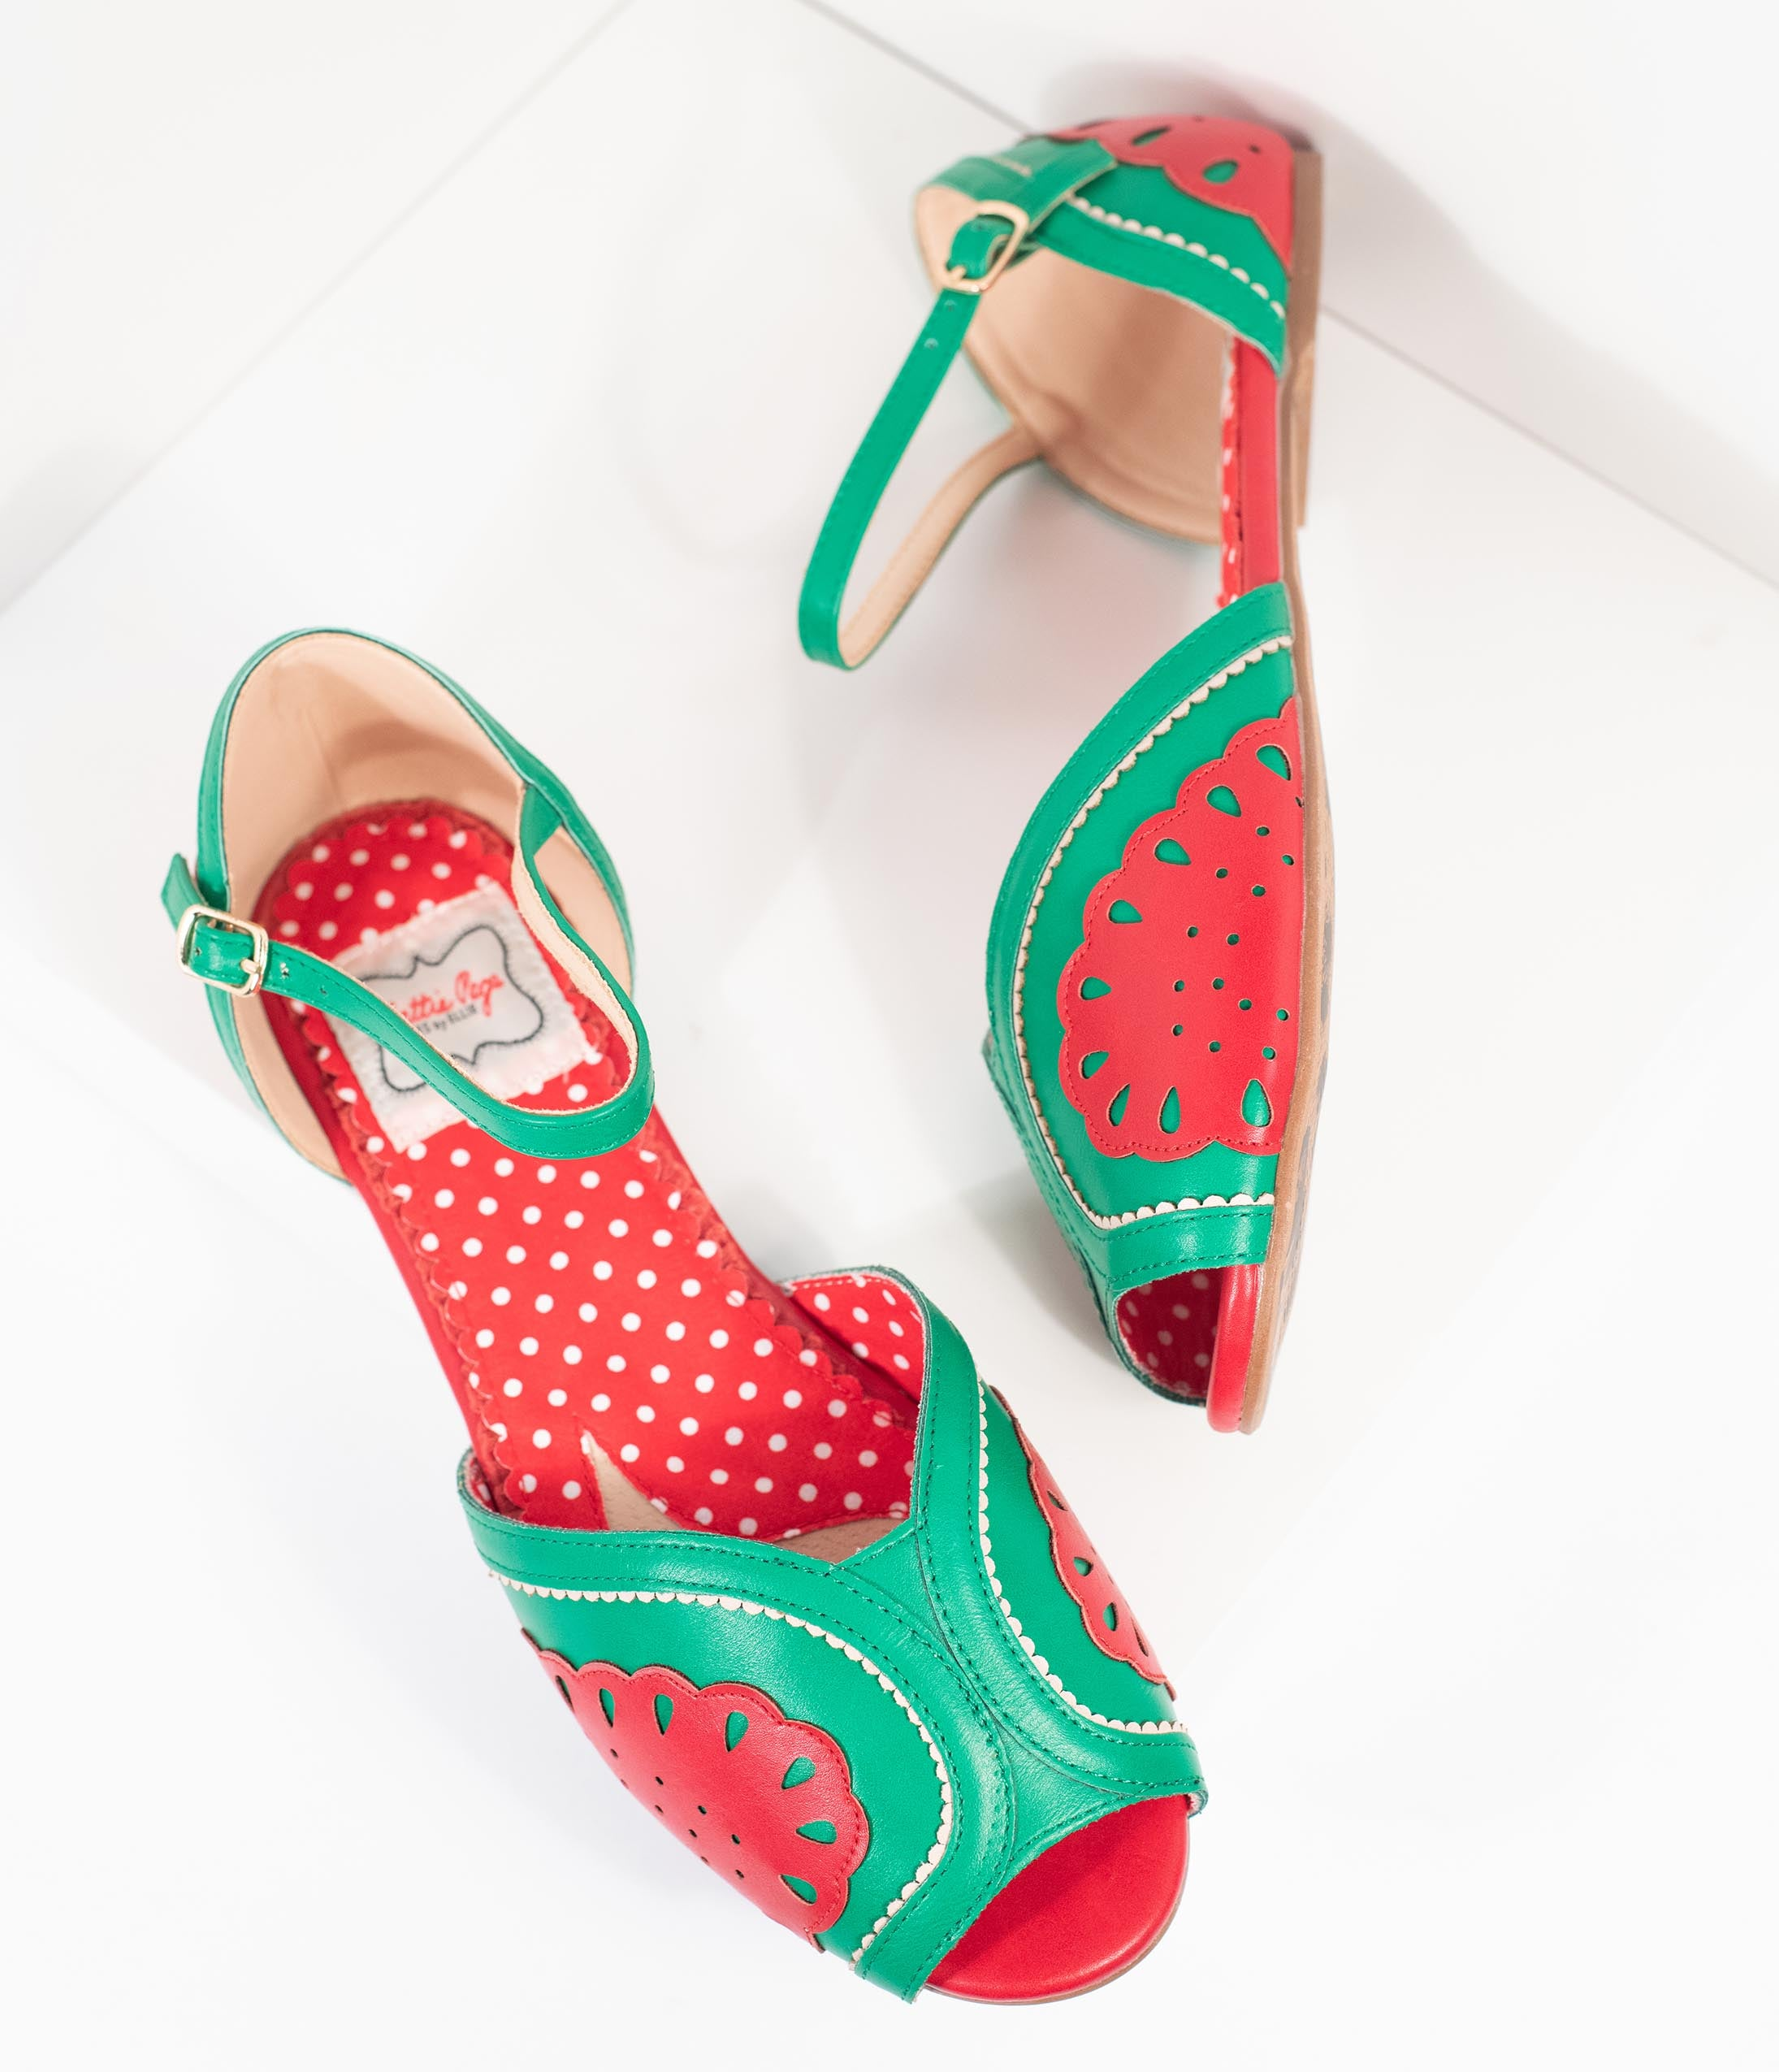 60s Shoes, Boots | 70s Shoes, Platforms, Boots Bettie Page Red  Green Leatherette Peep Toe FruitieWatermelon Sandals $78.00 AT vintagedancer.com